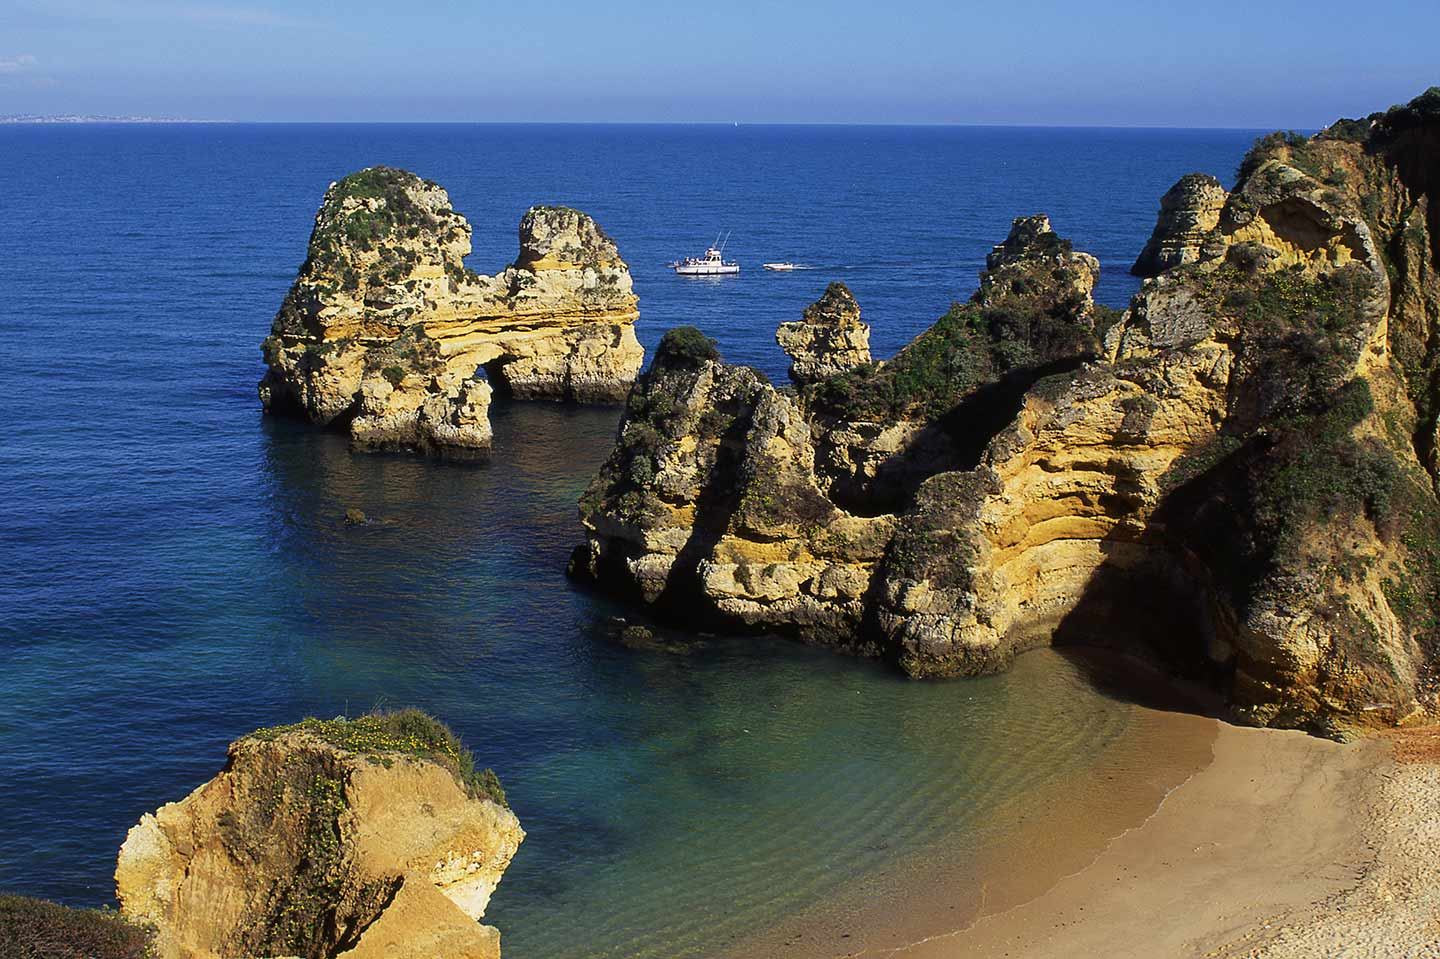 Image of Praia do Camilo beach, Lagos, Algarve